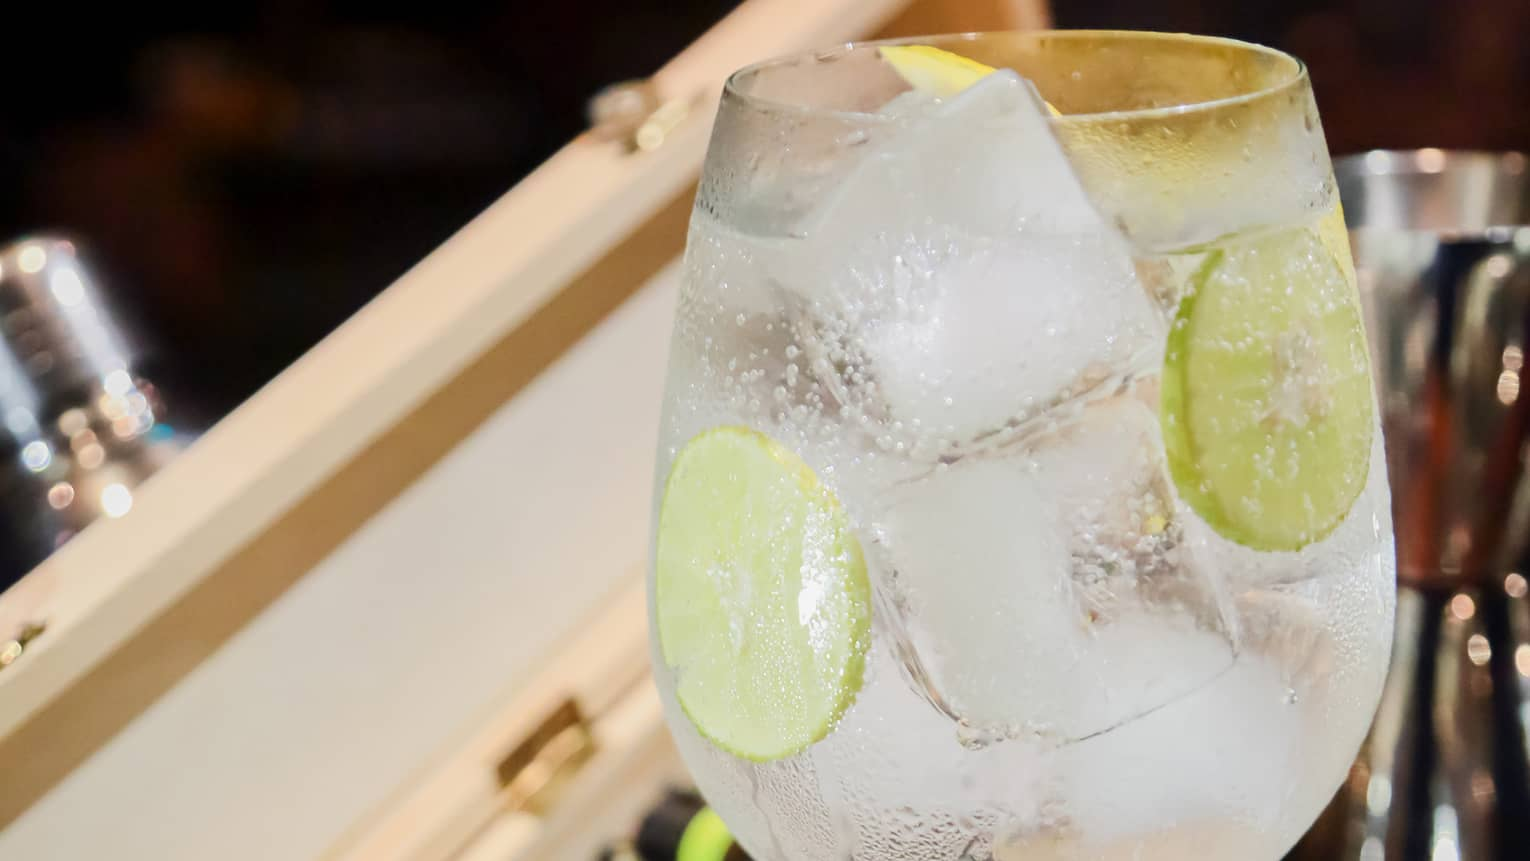 Jim-Let Fox-Trot – Tanqueray, Lime, Tonic